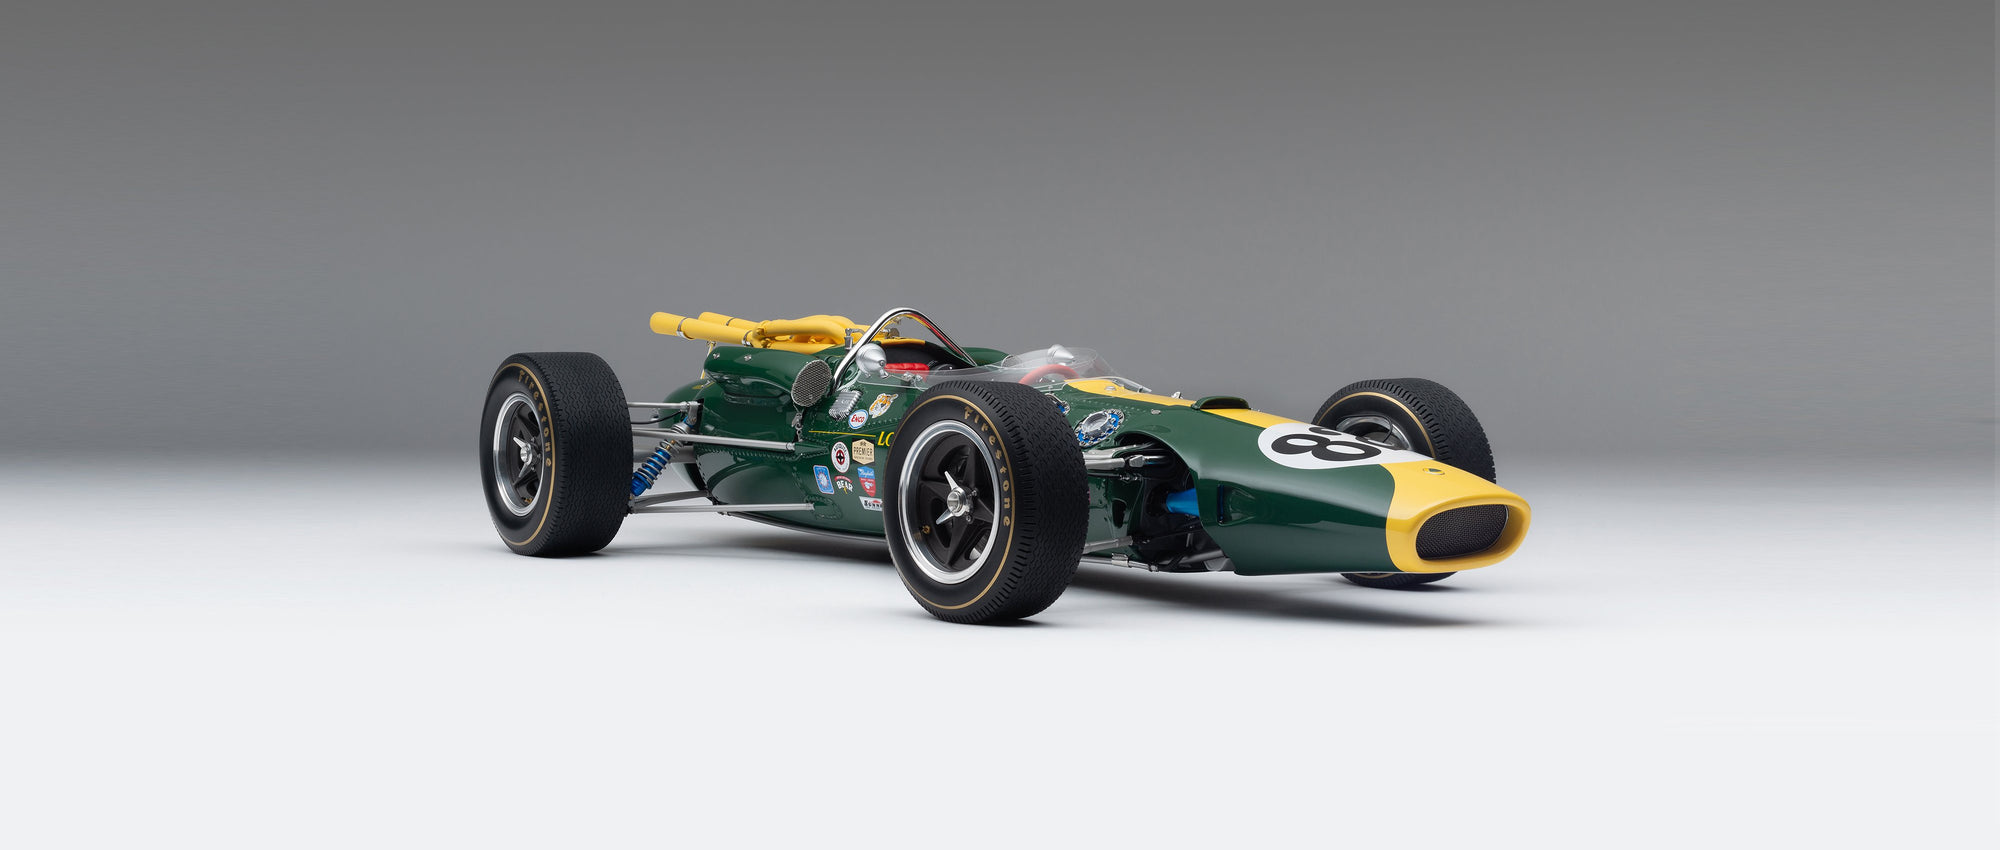 Lotus 38 - 1965 Indianapolis 500 Winner